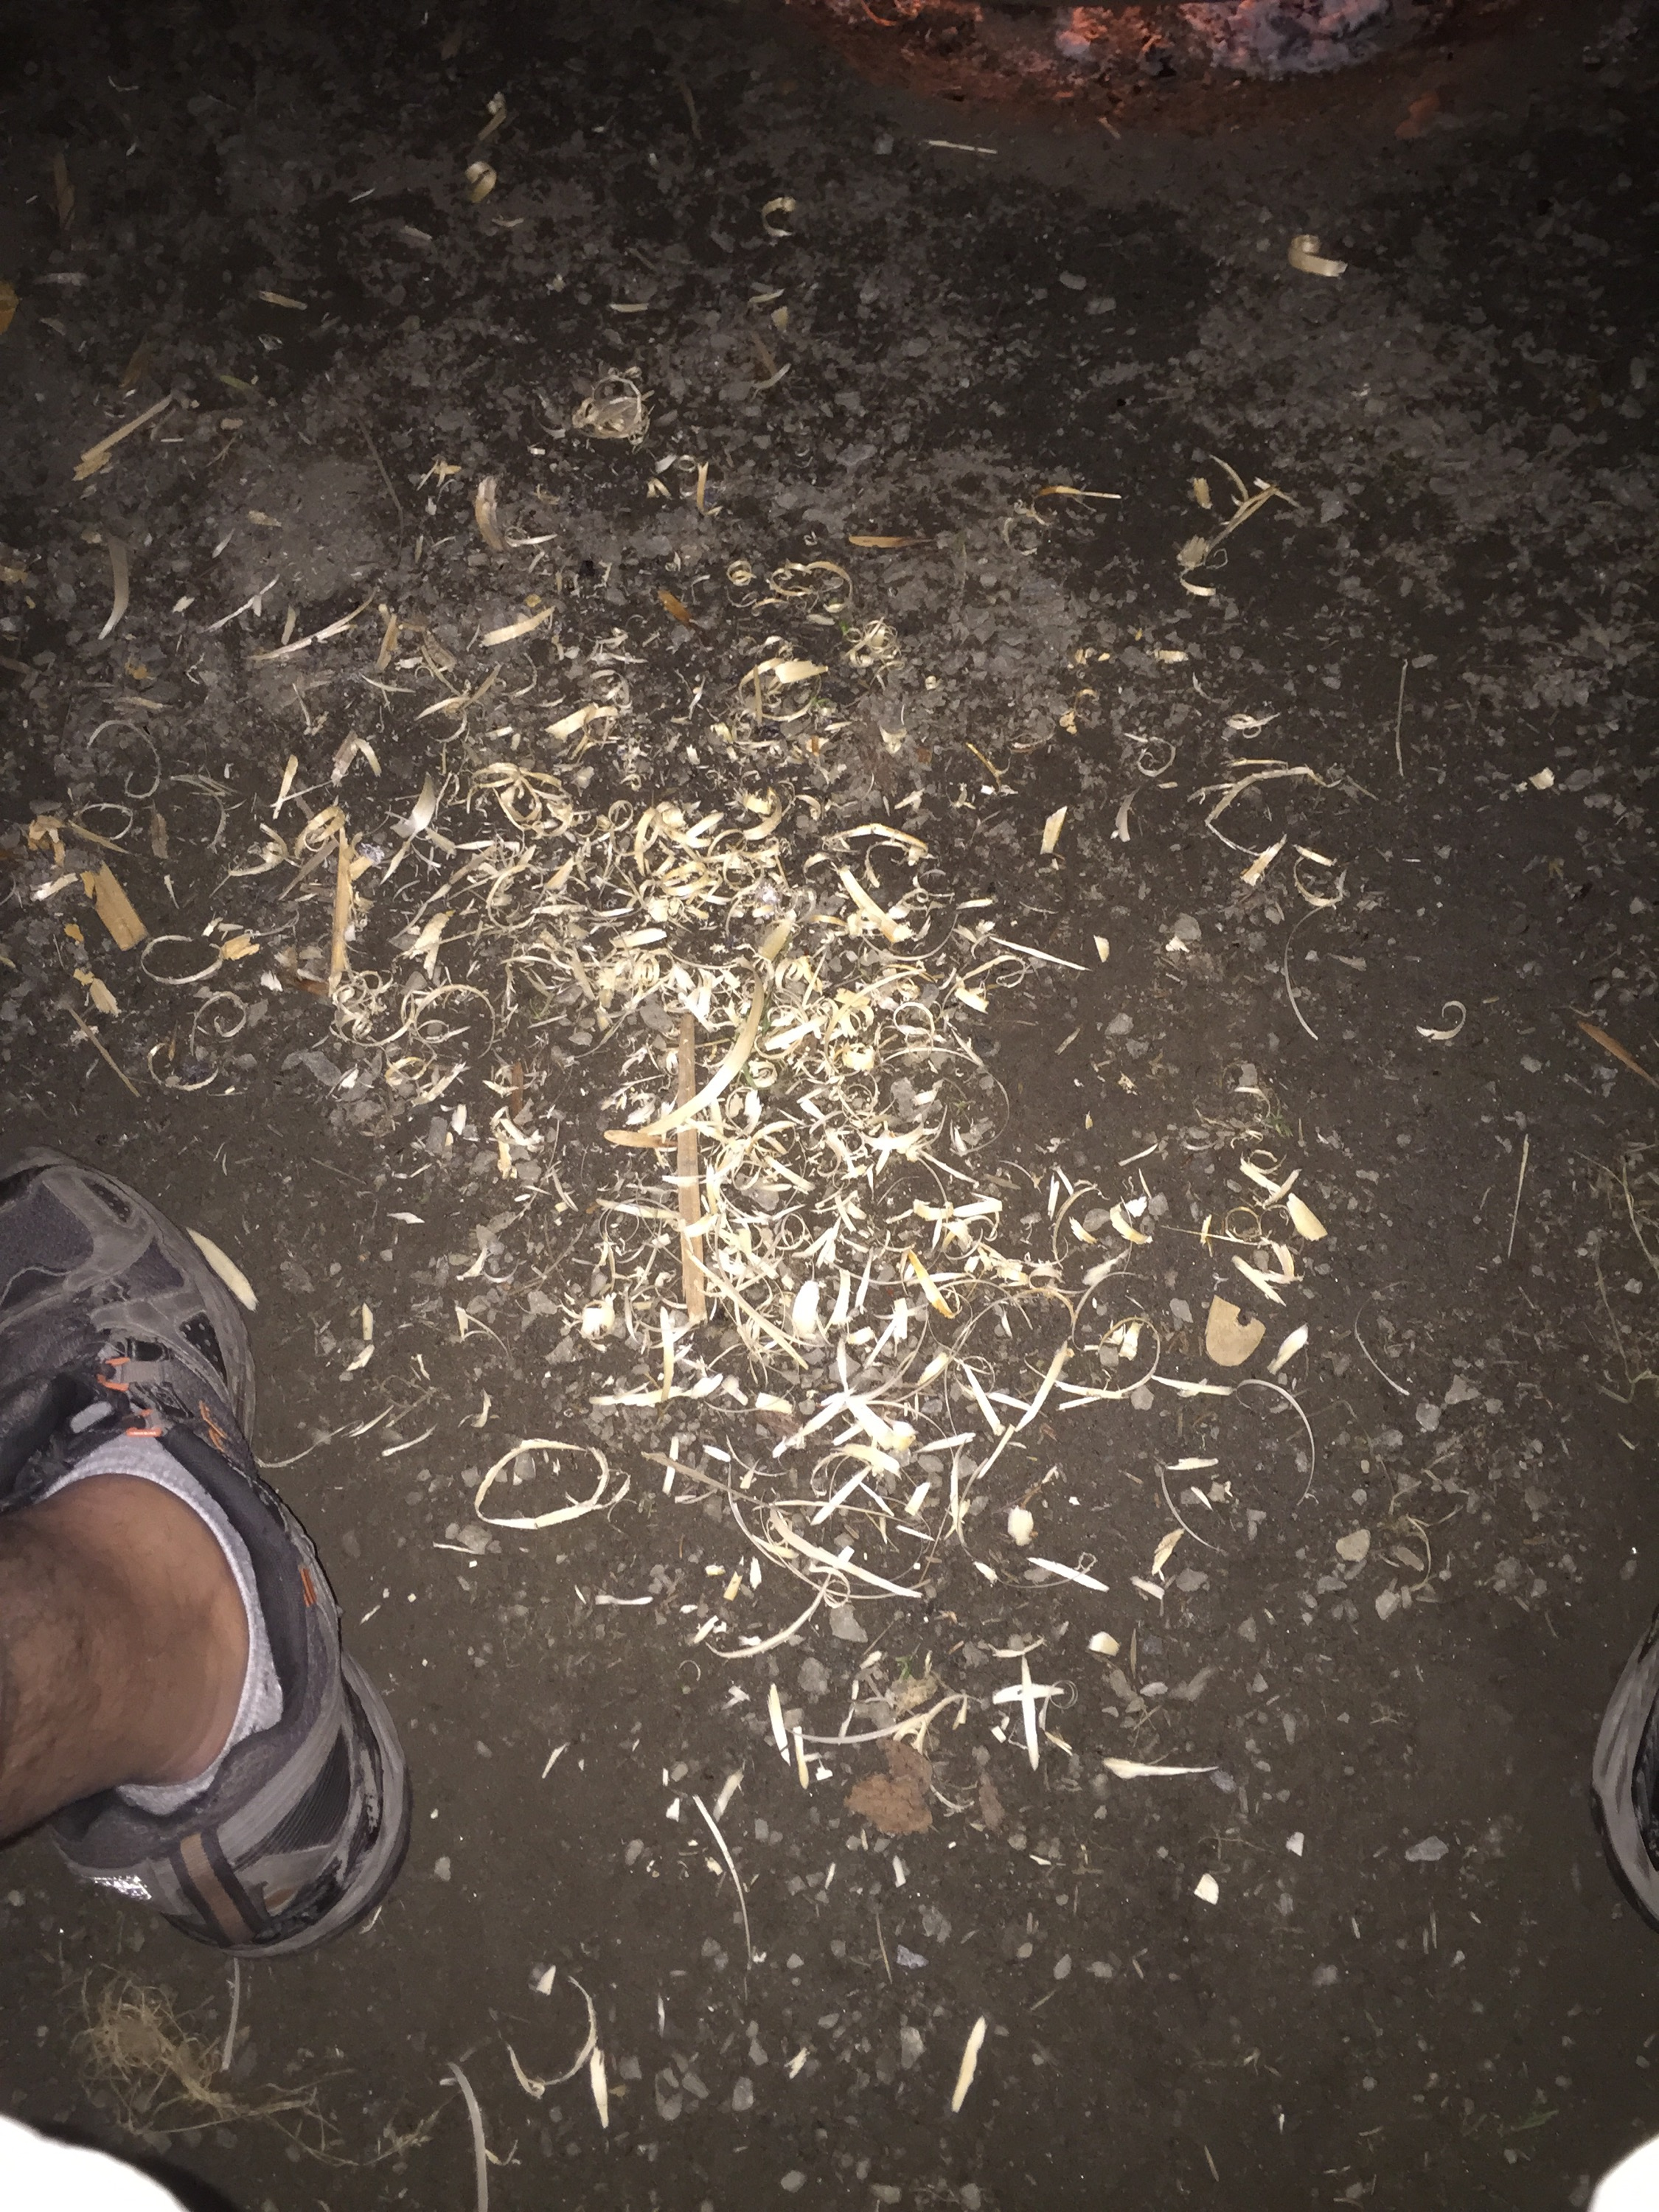 wood shavings on the ground